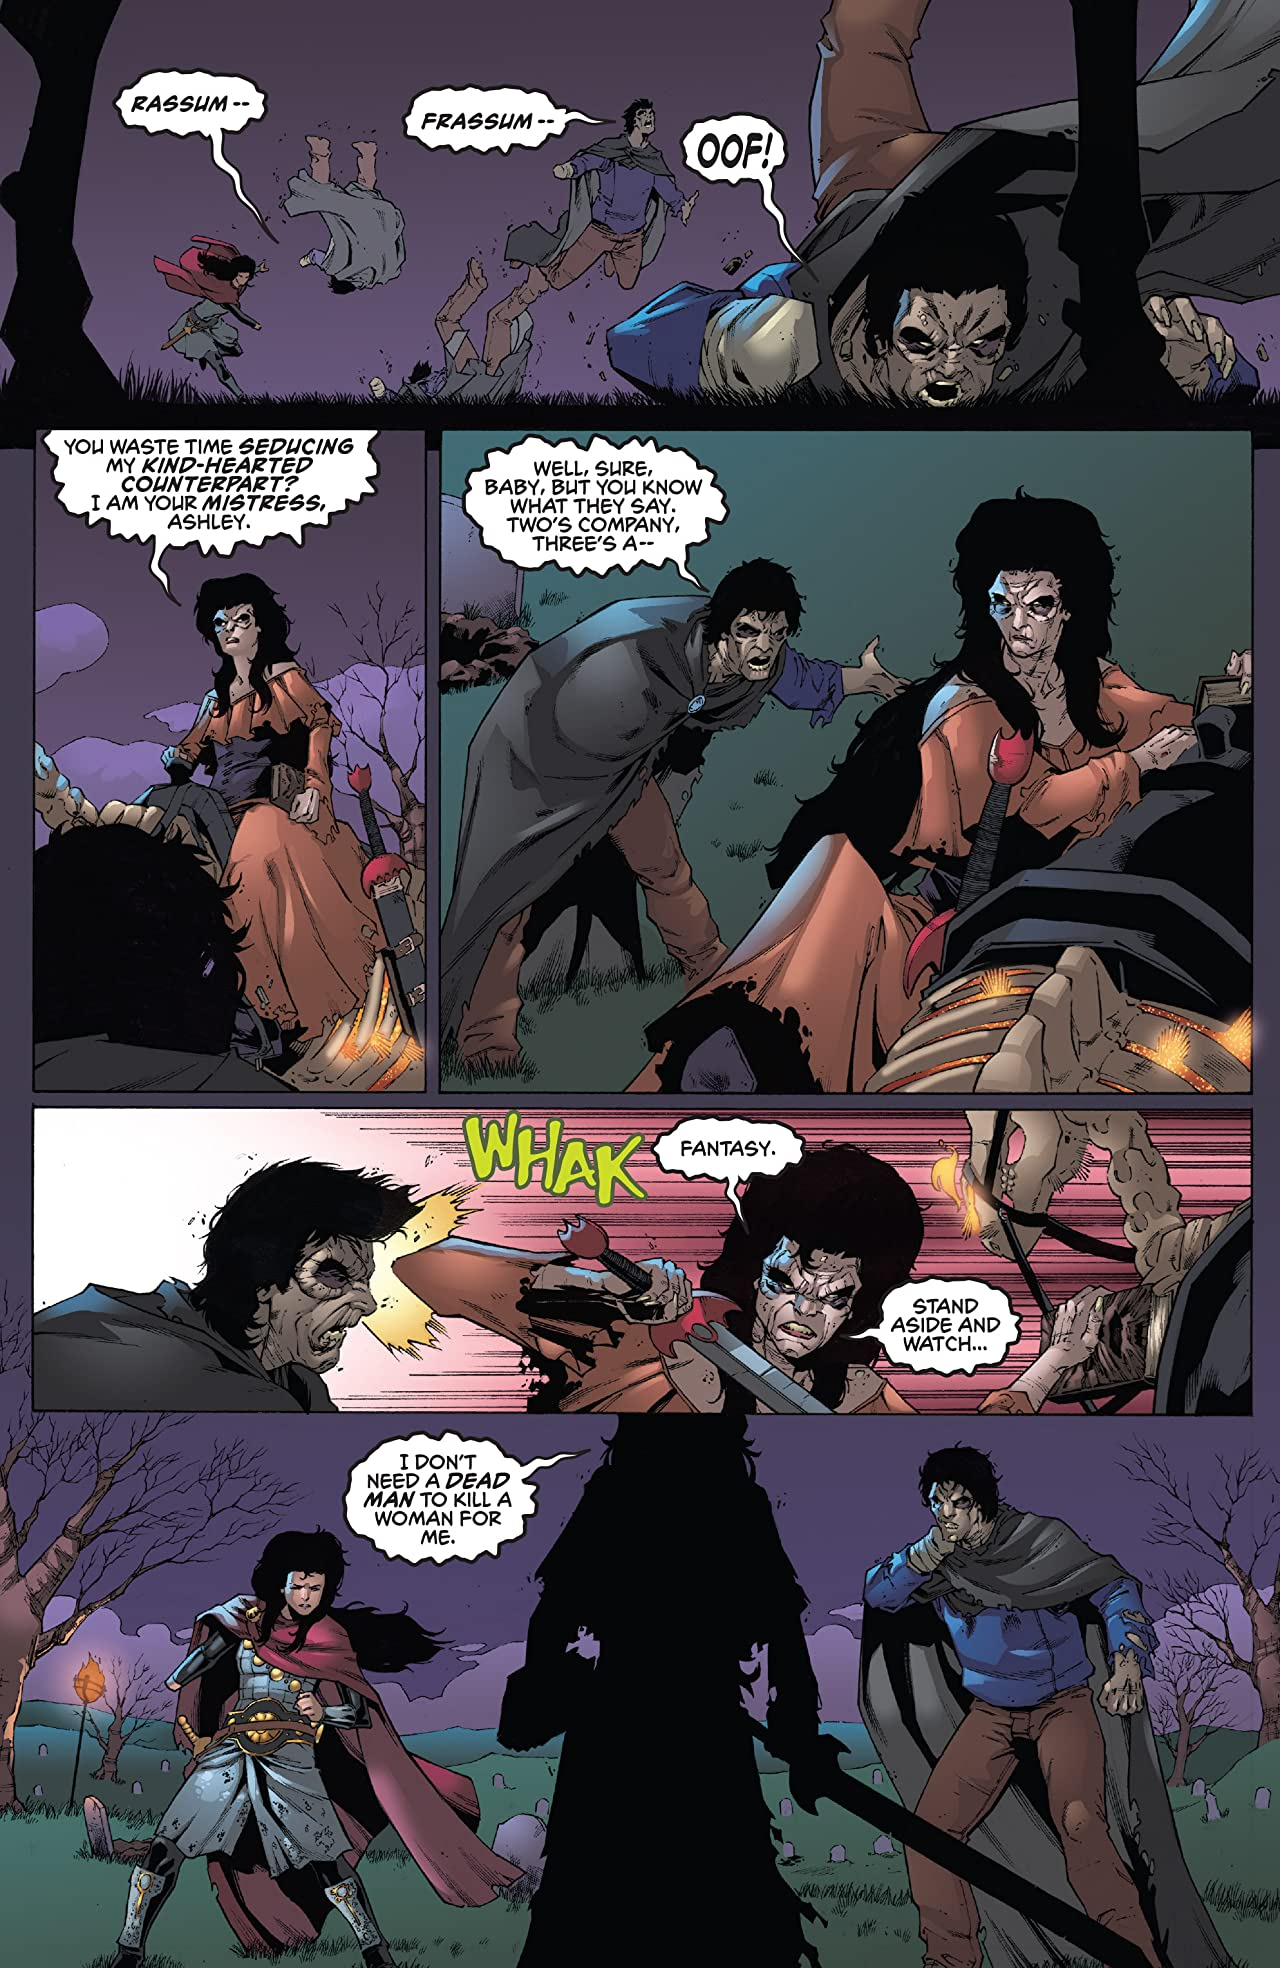 Kiss/Army Of Darkness #4